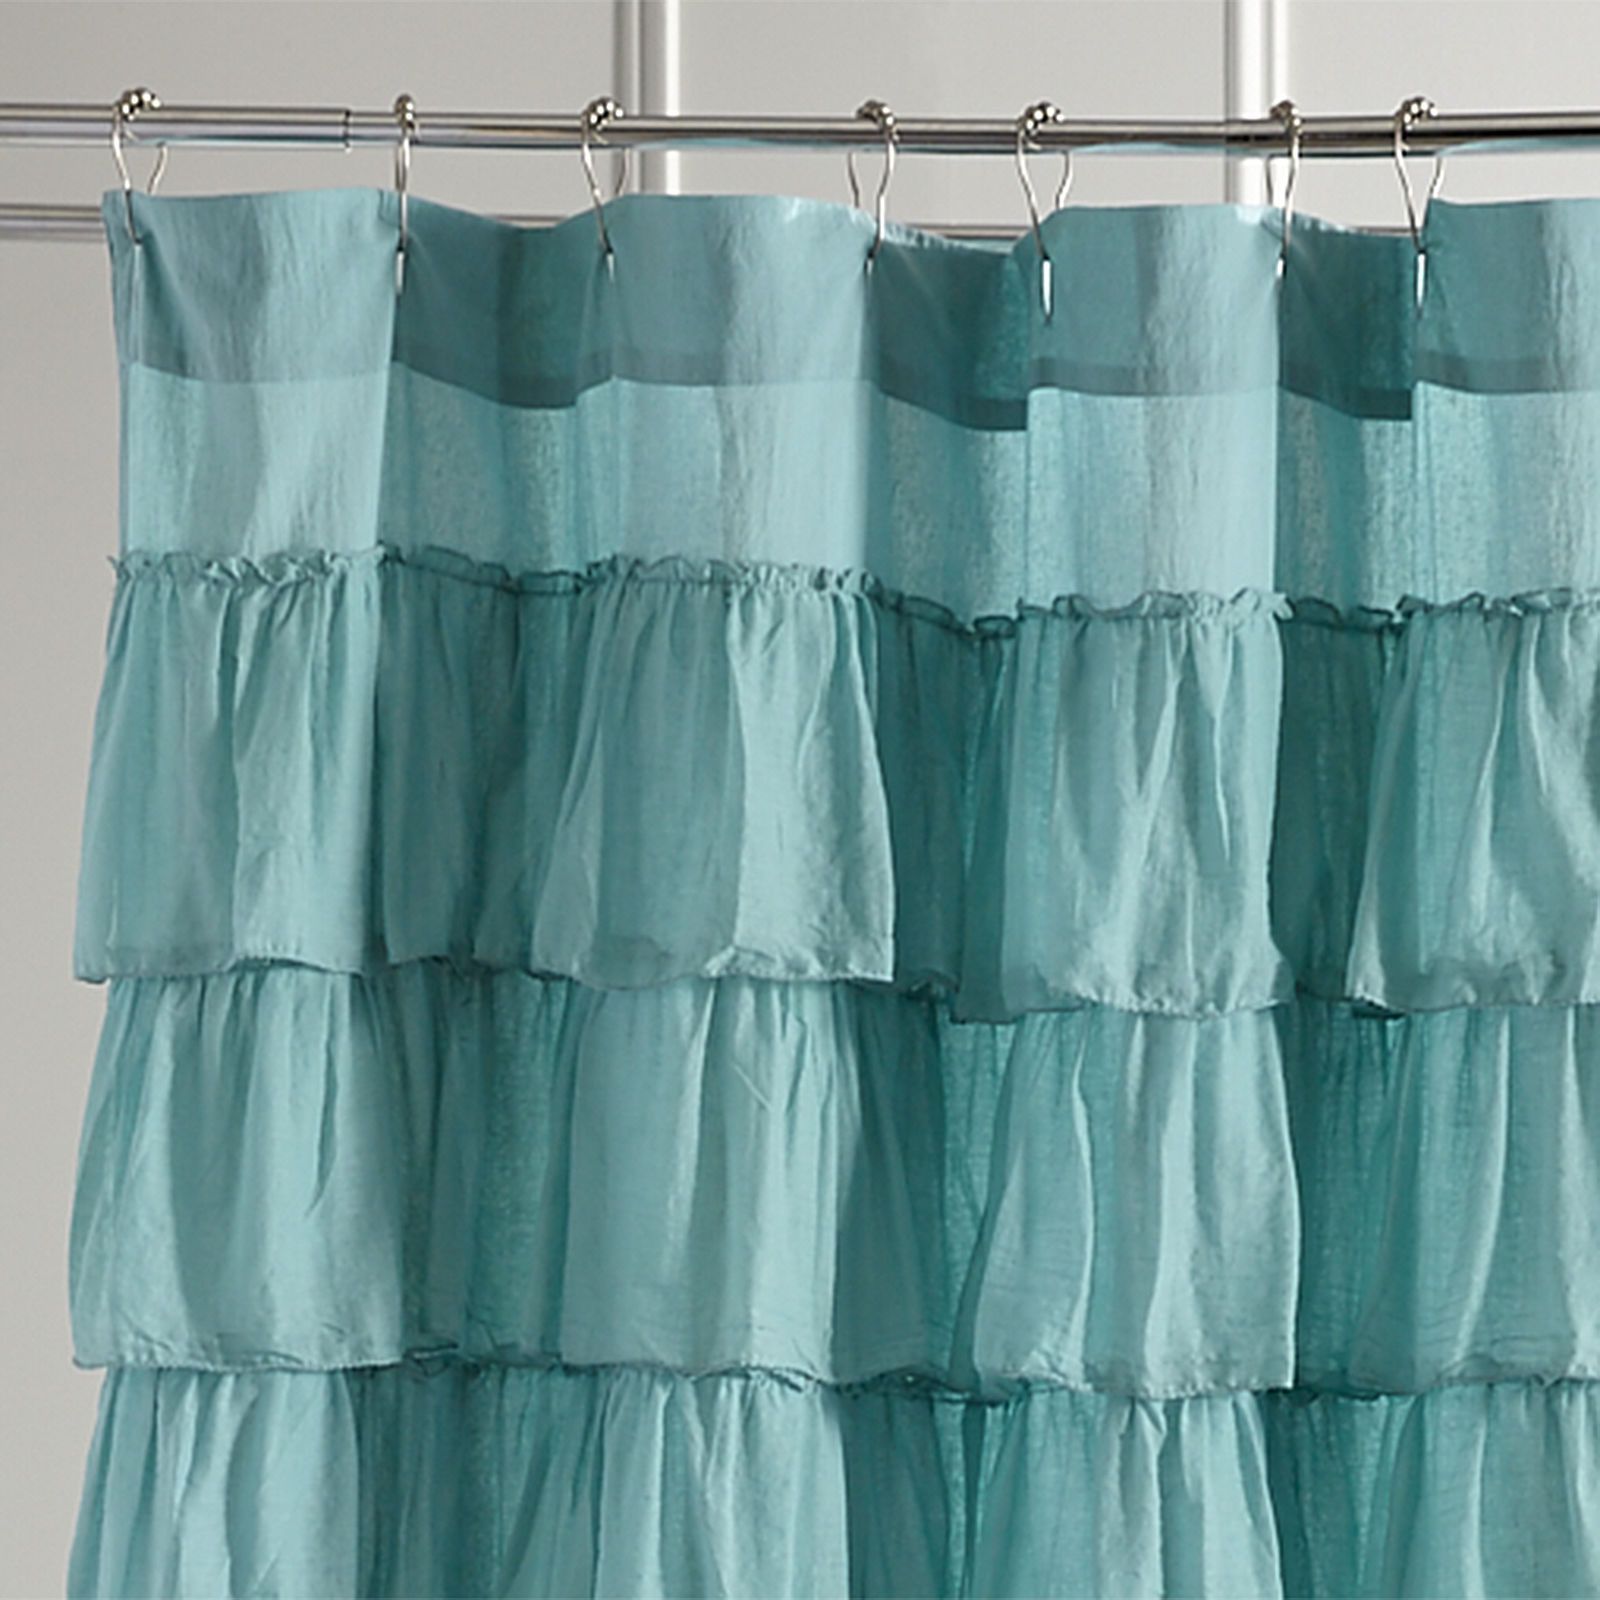 Ruffled turquoise shower curtain parlour